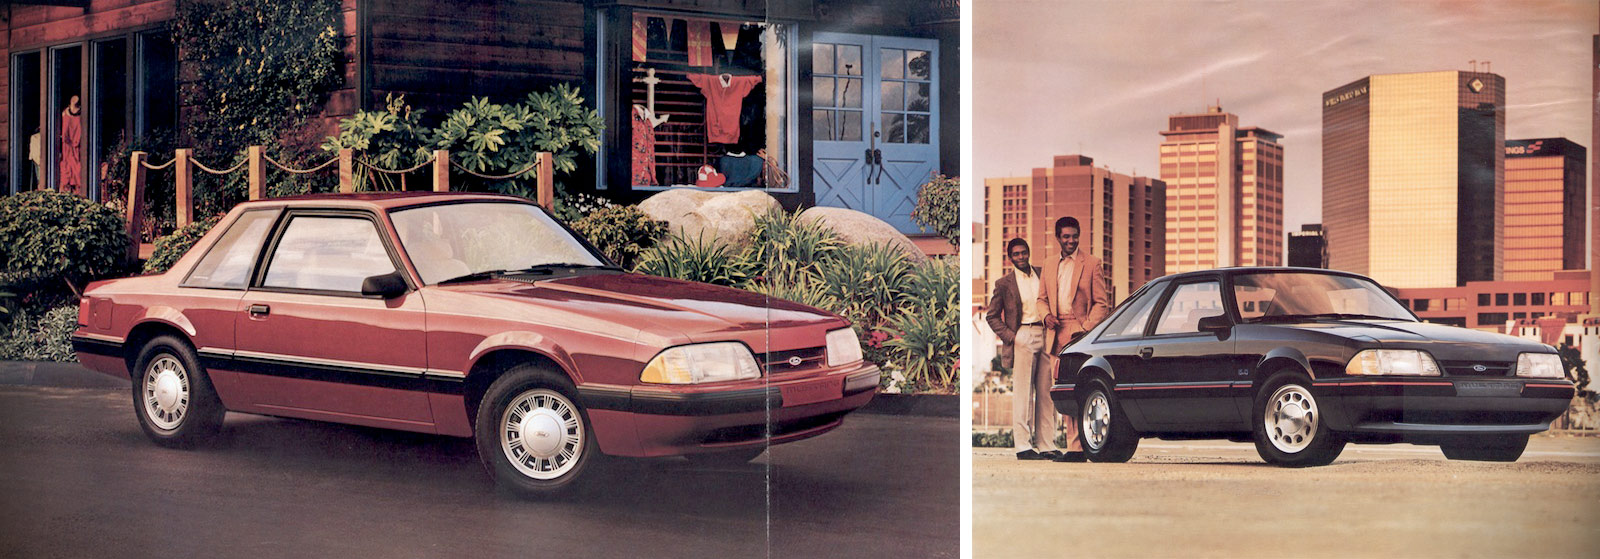 1987 Mustang LX 5.0l coupe and hatchback